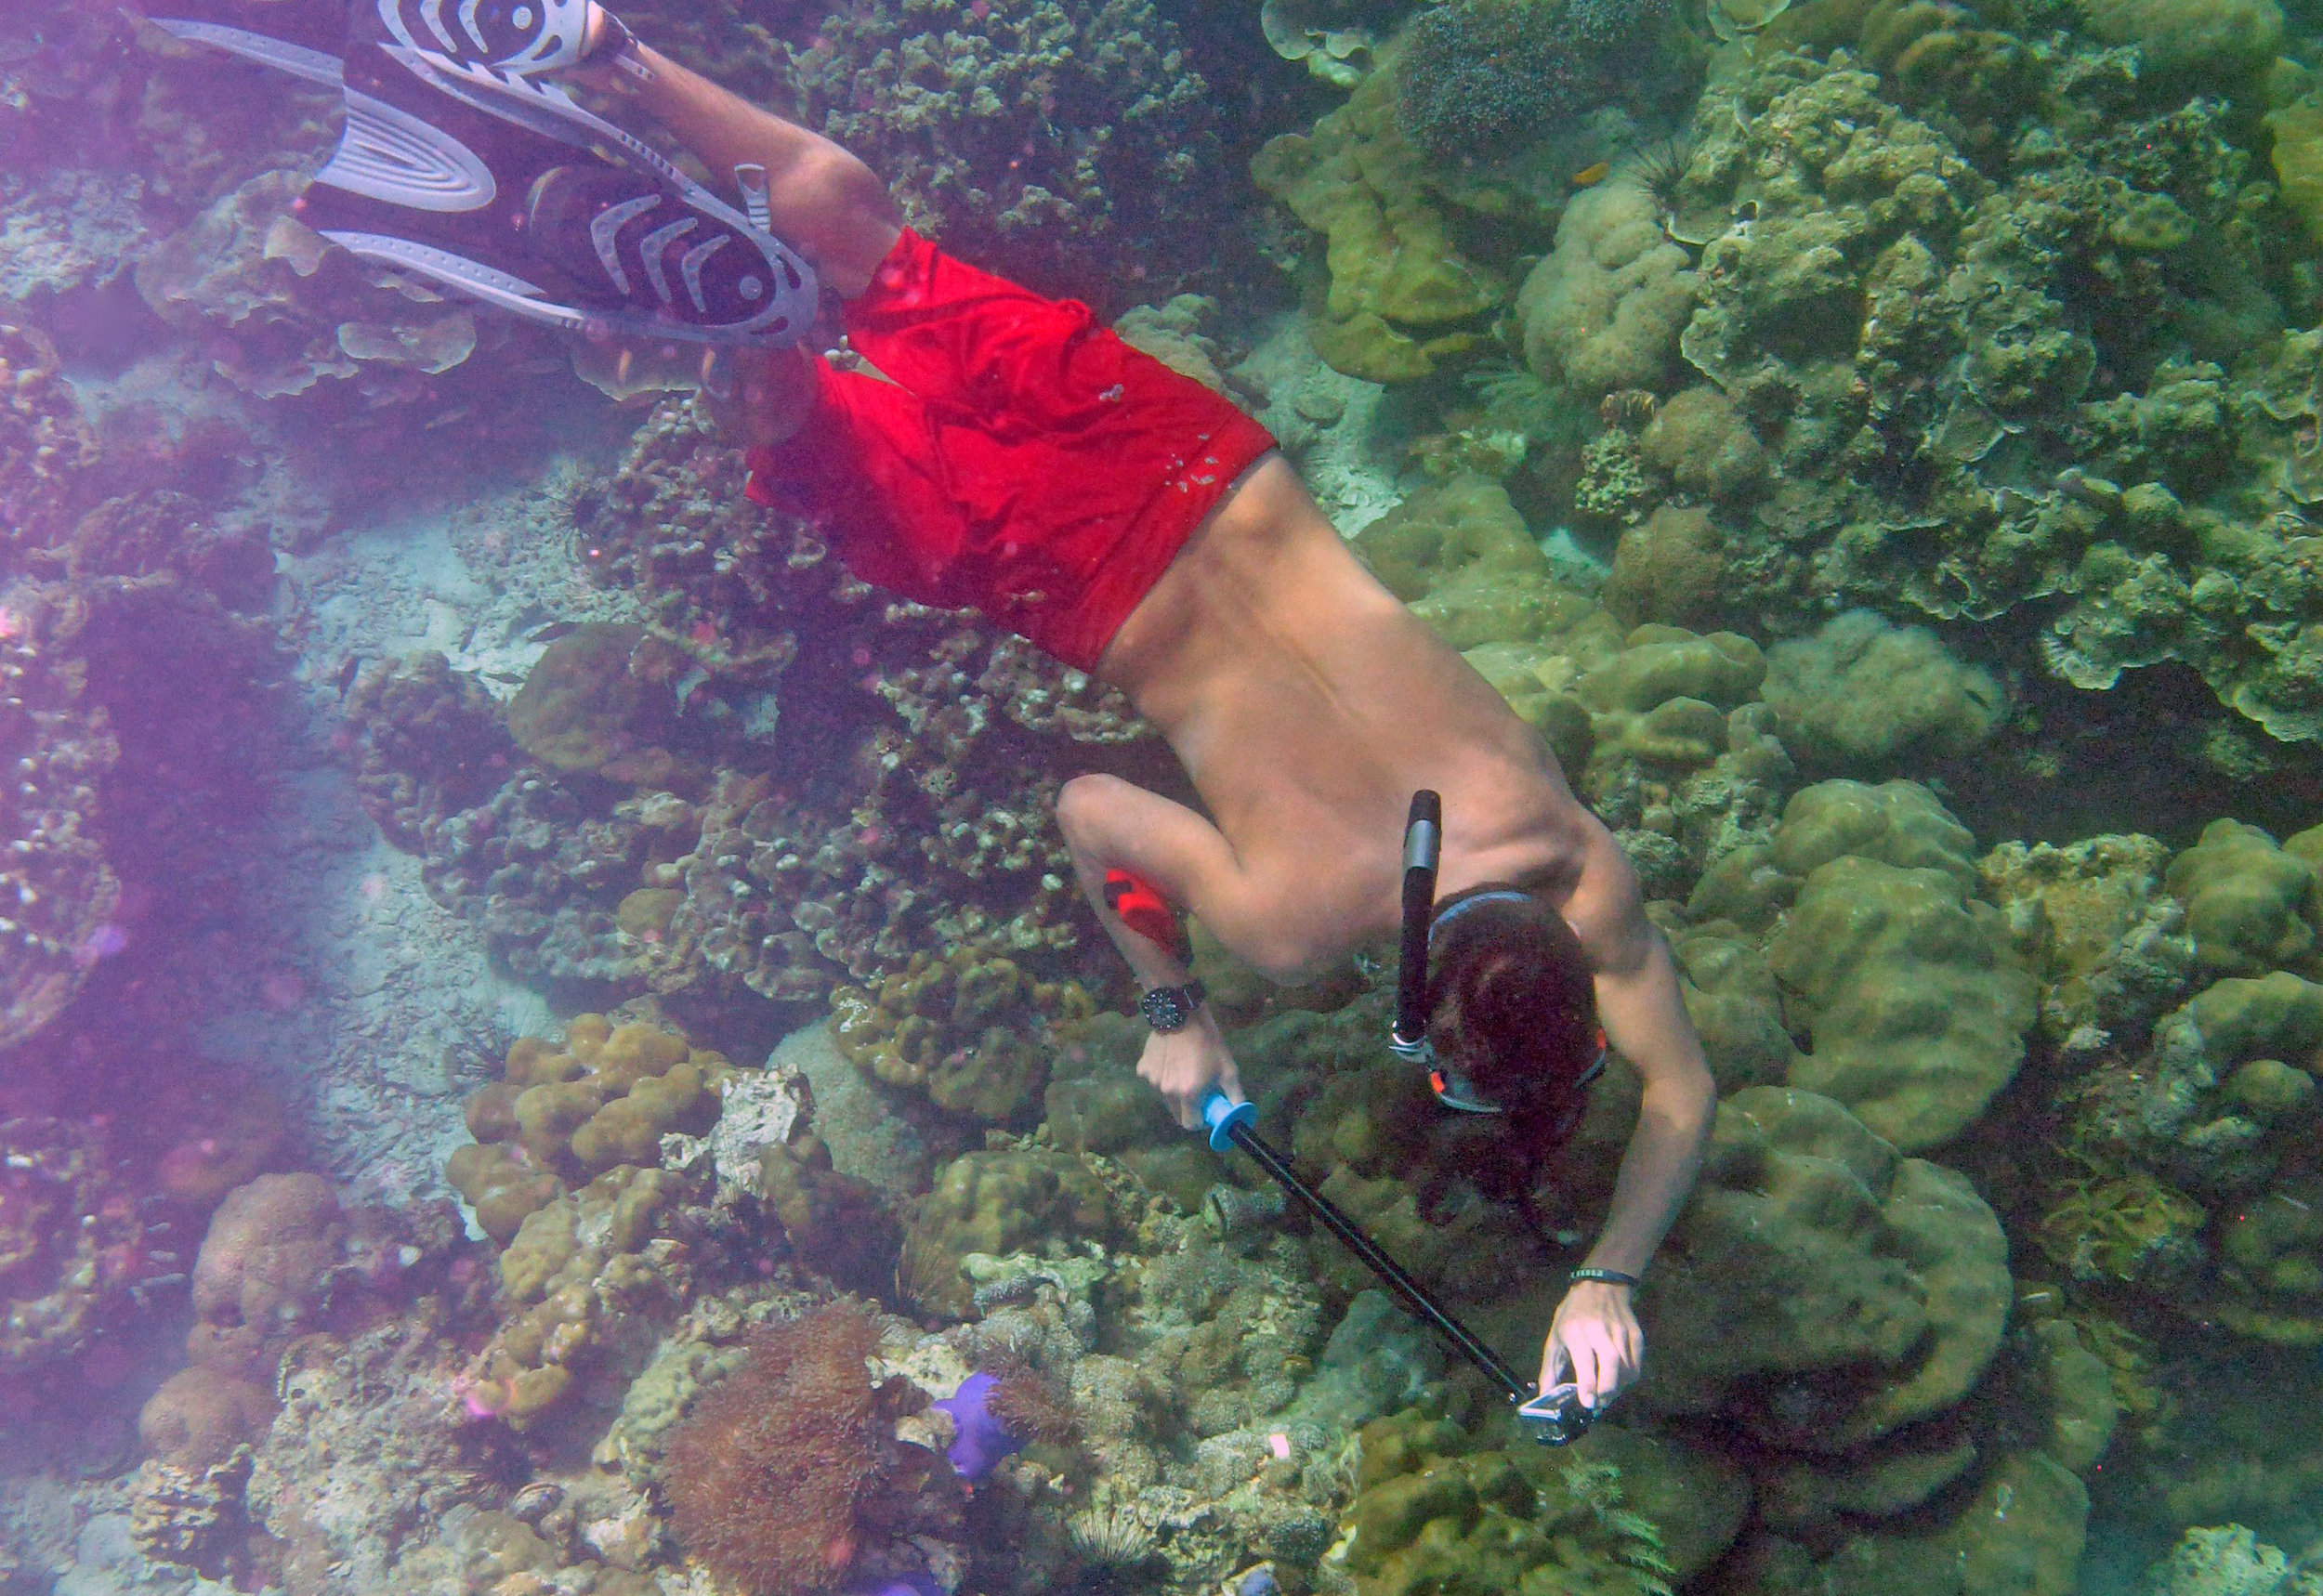 ThailandMarine EcosystemsJANuary 22–MARCH 5, 202015 Quarter Credits - Compare three islands and coral reef ecosystems across Thailand and IndonesiaGain skills for marine surveying, monitoring, field observation and conservationIdentify multiple fish and coral species while contributing to our multi-year surveyExamine issues affecting marine conservation and sustainability